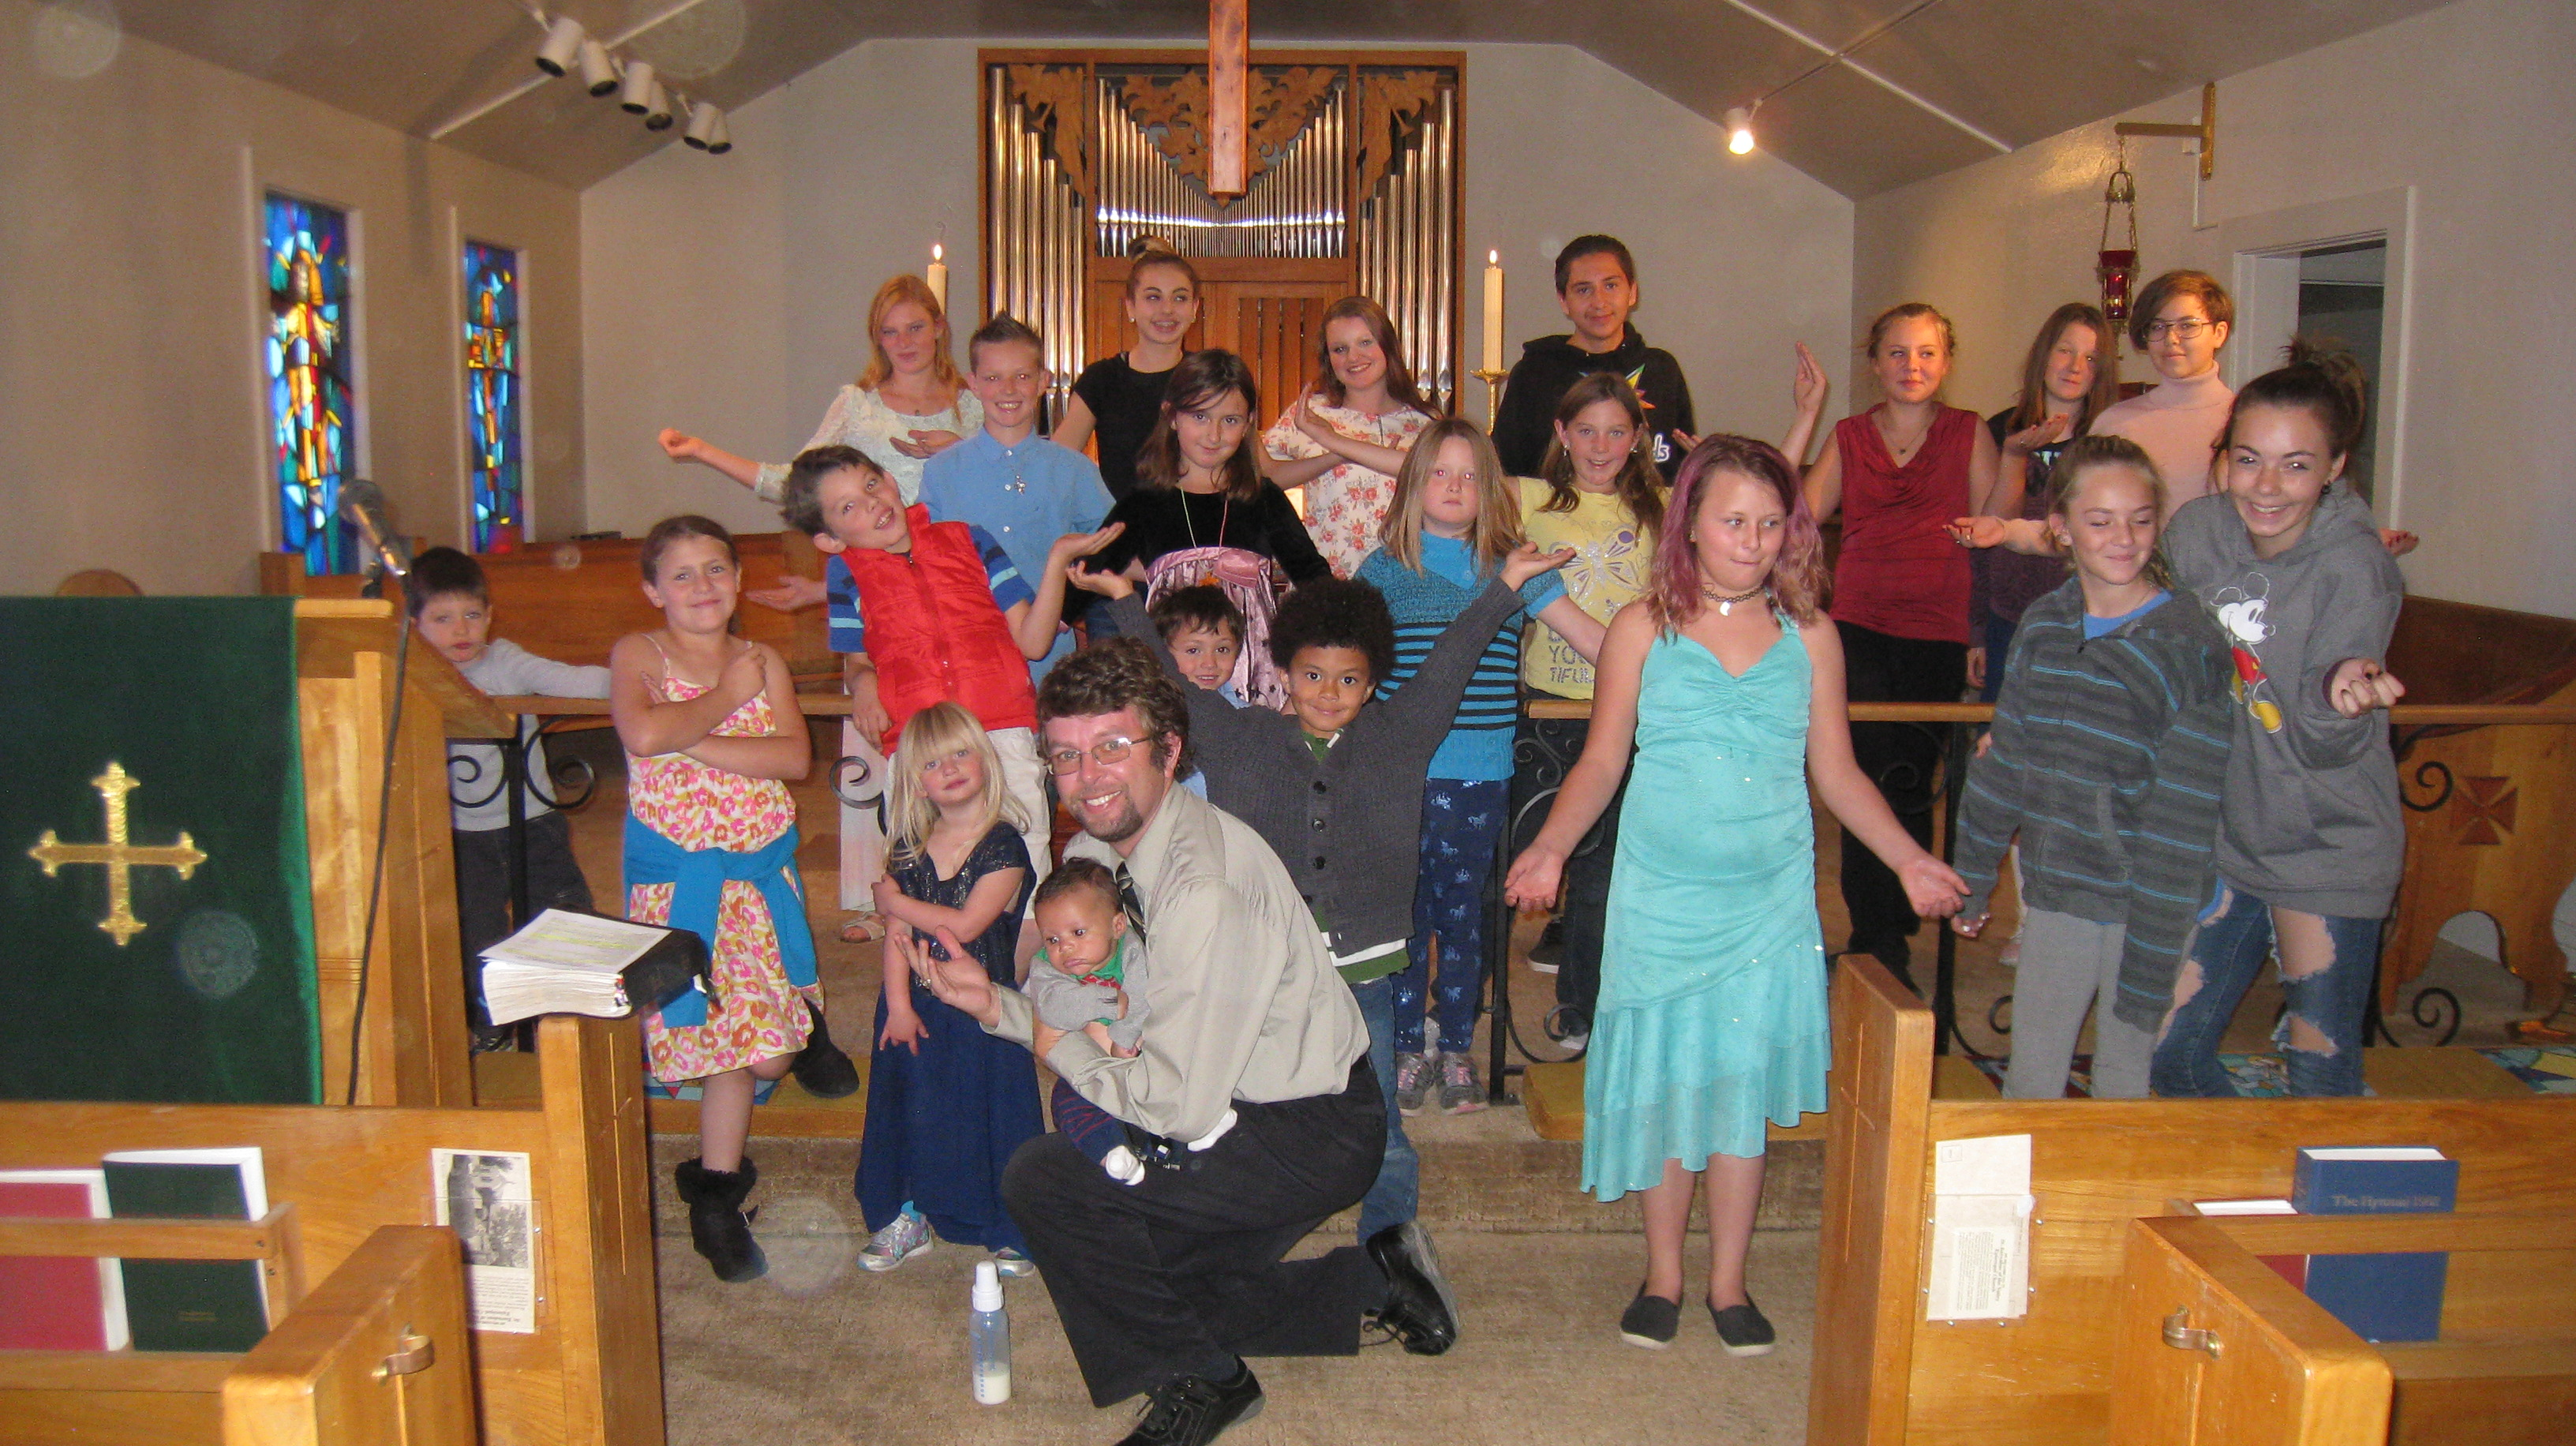 Large group of youth in the church